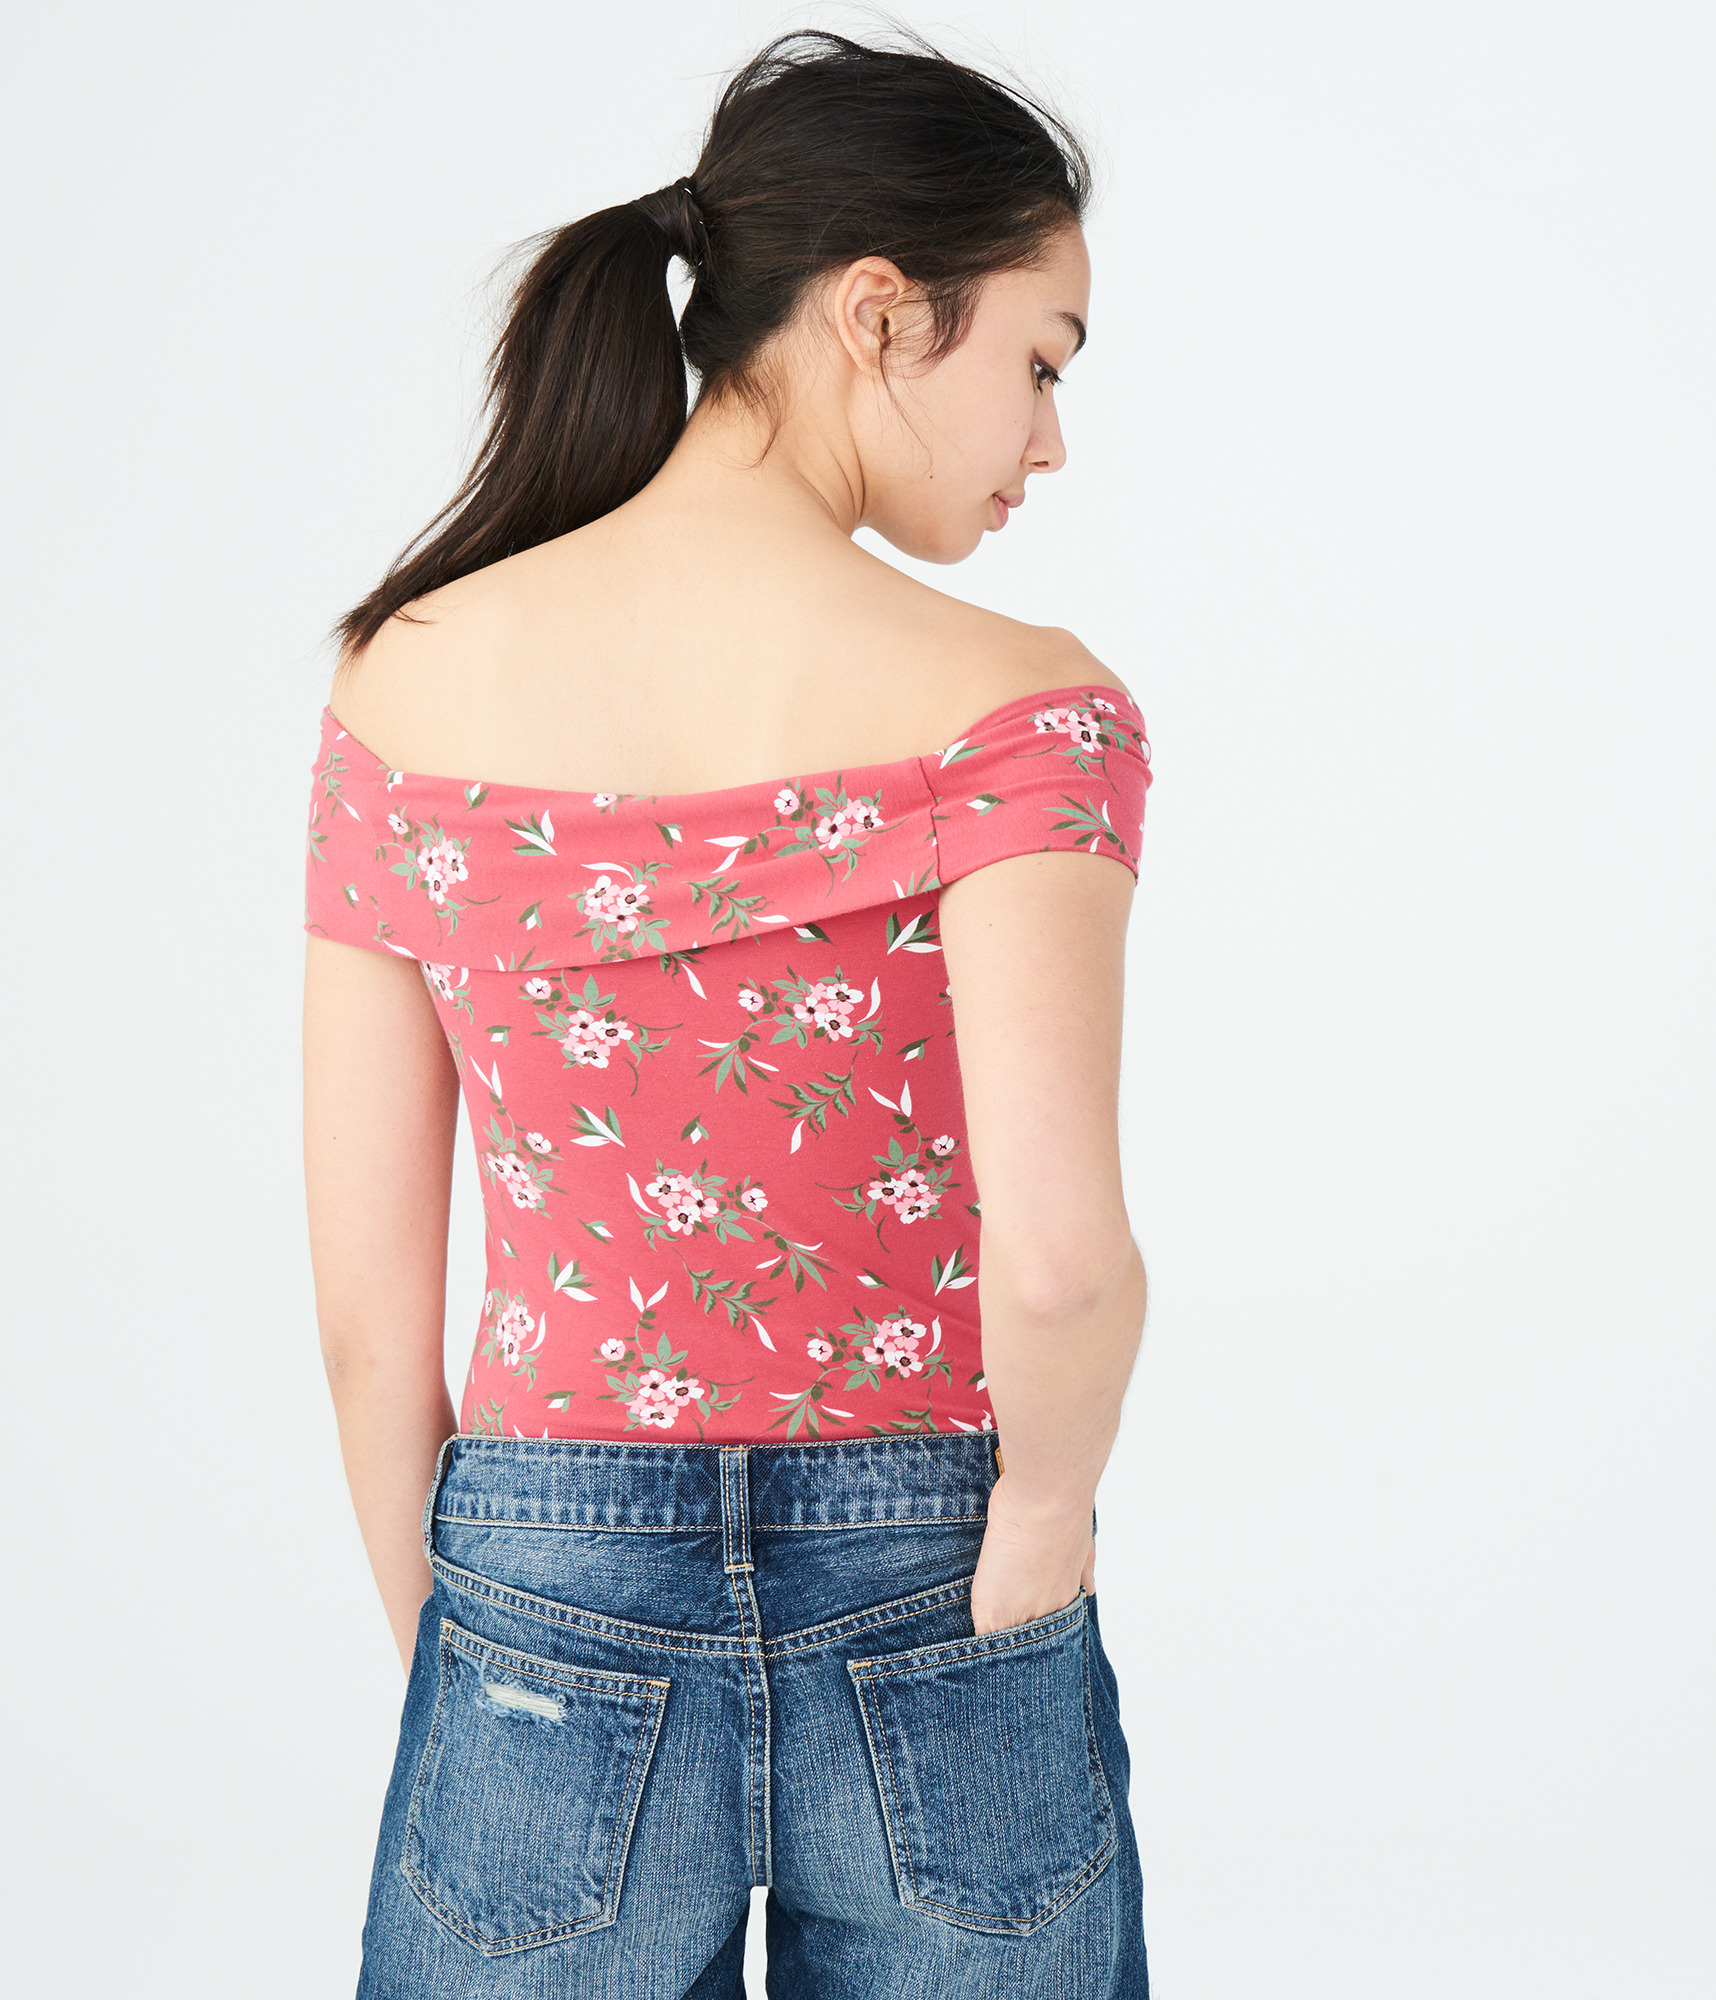 aeropostale womens floral off-the-shoulder top  7b9ad94fd0